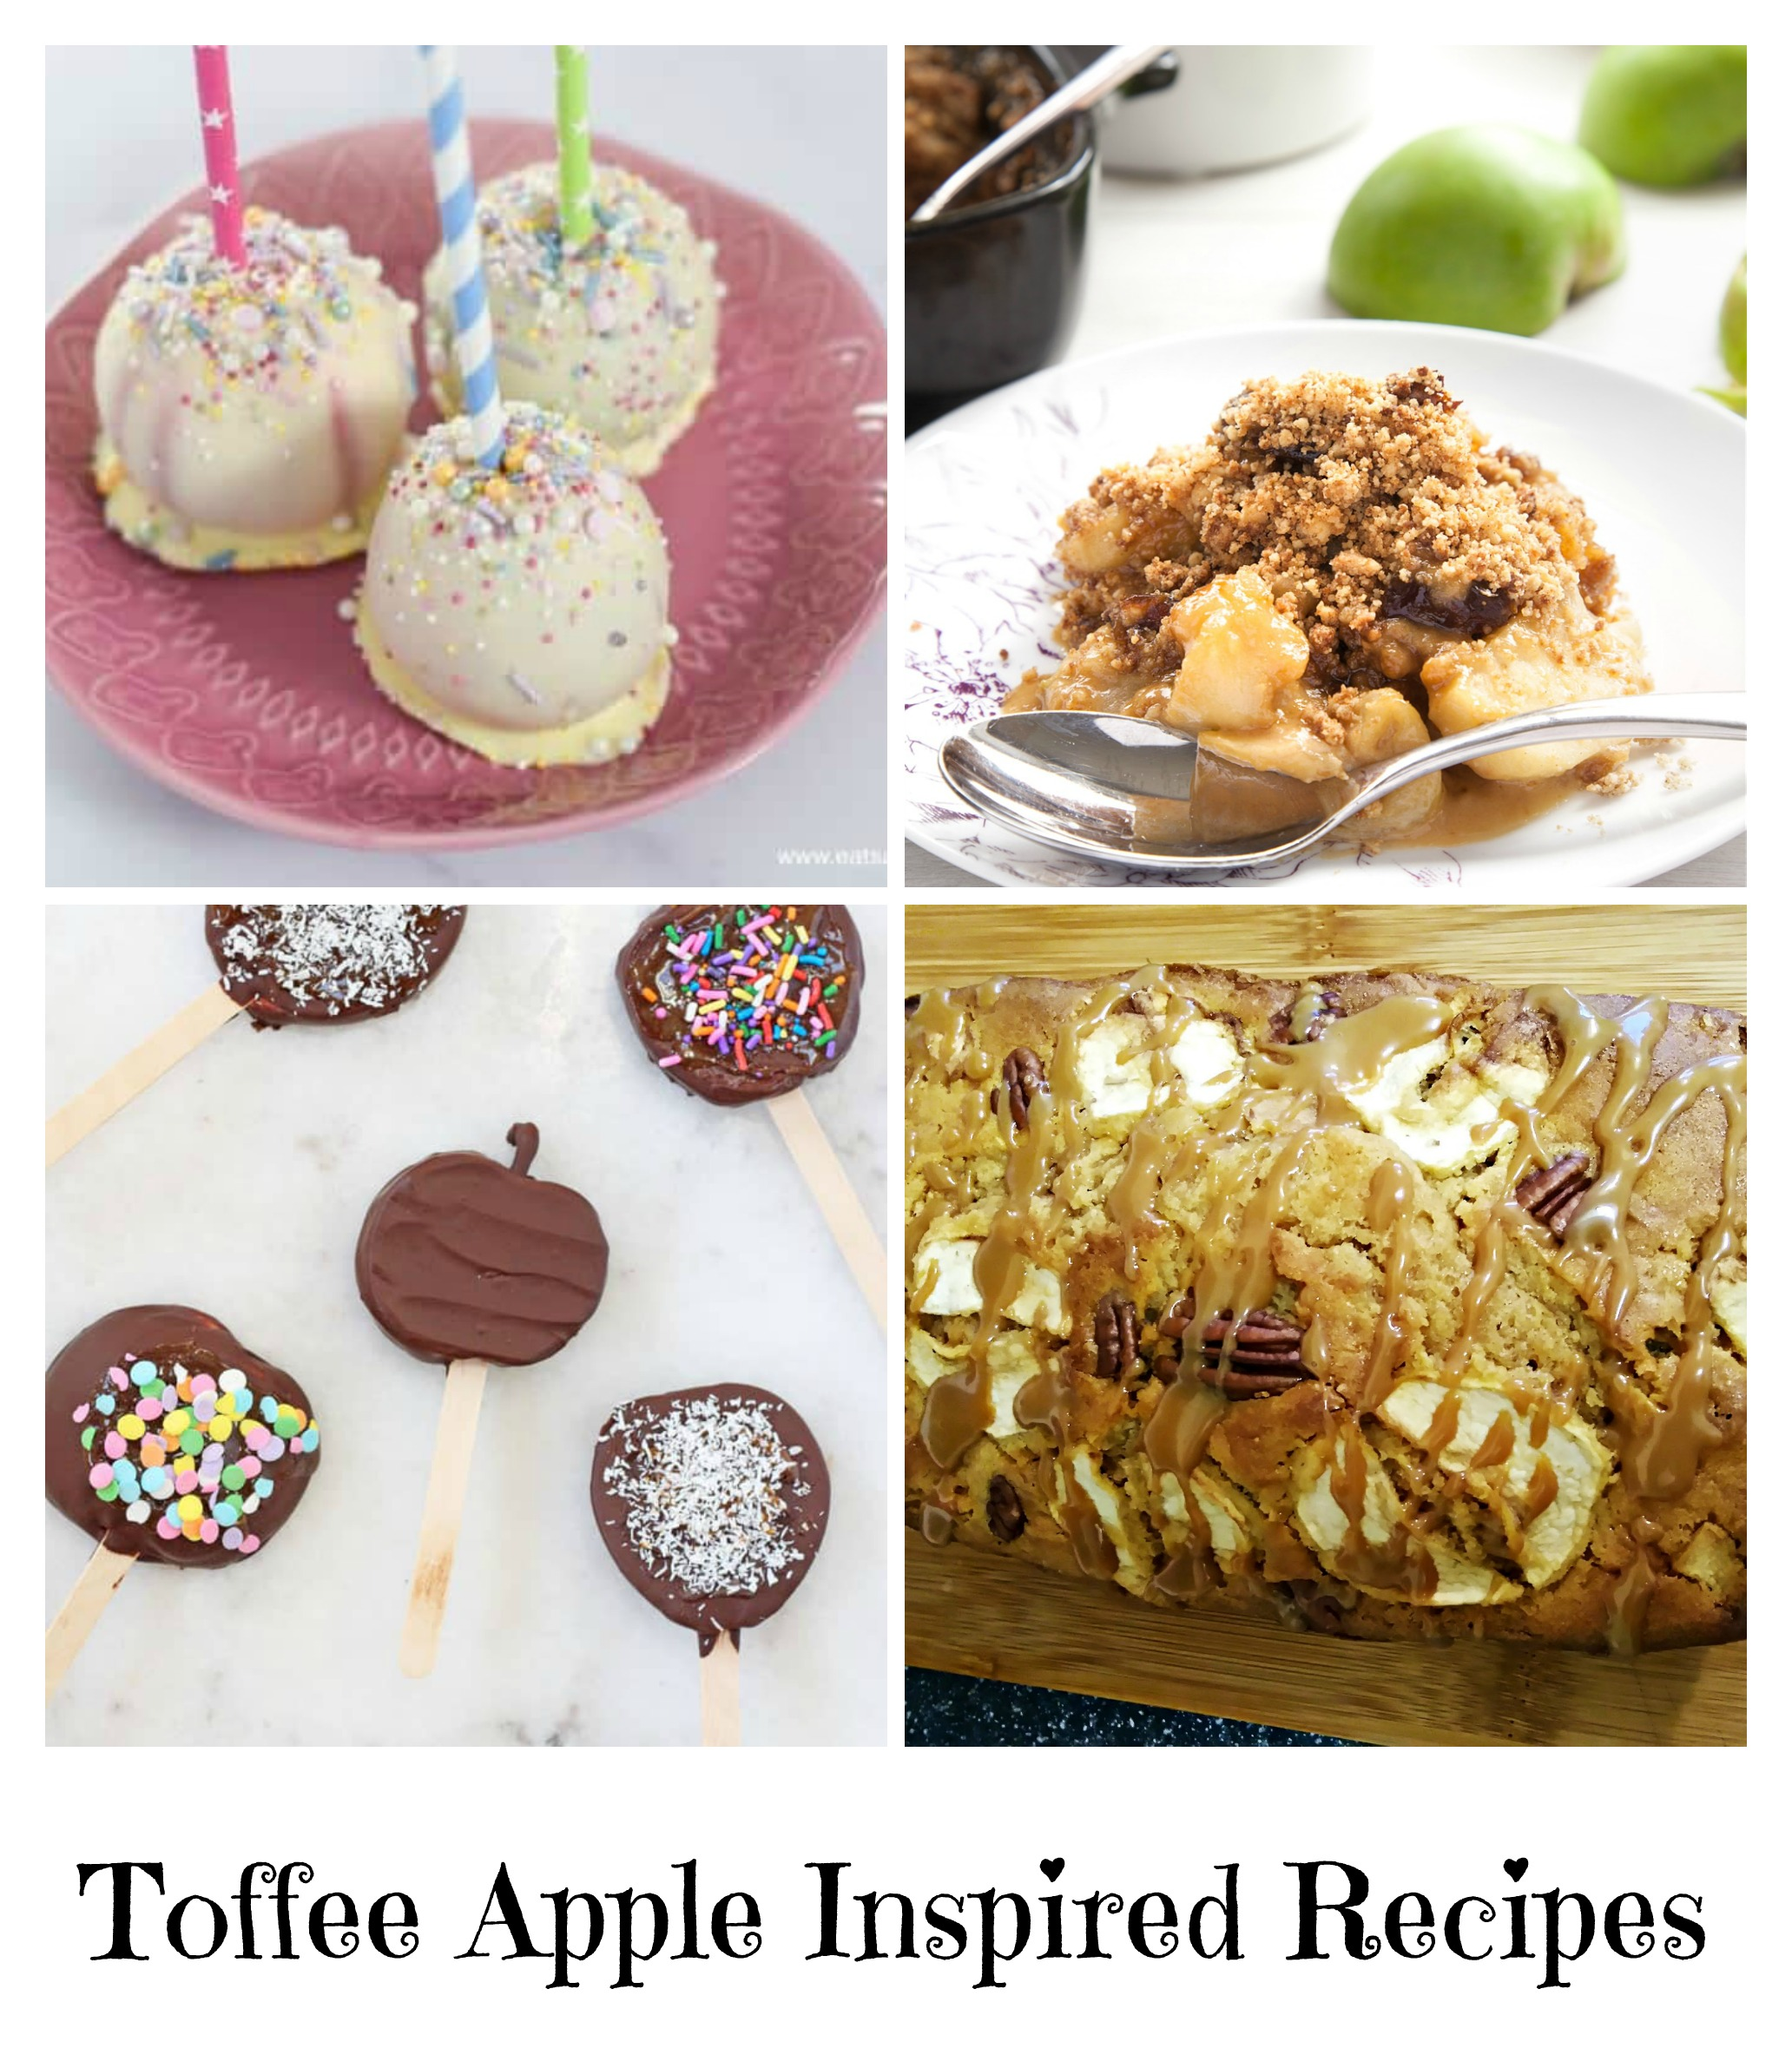 four toffee apple deserts, unicorn apples, toffee apple crumble, sliced toffee apple slices and toffee apple and pecan cake